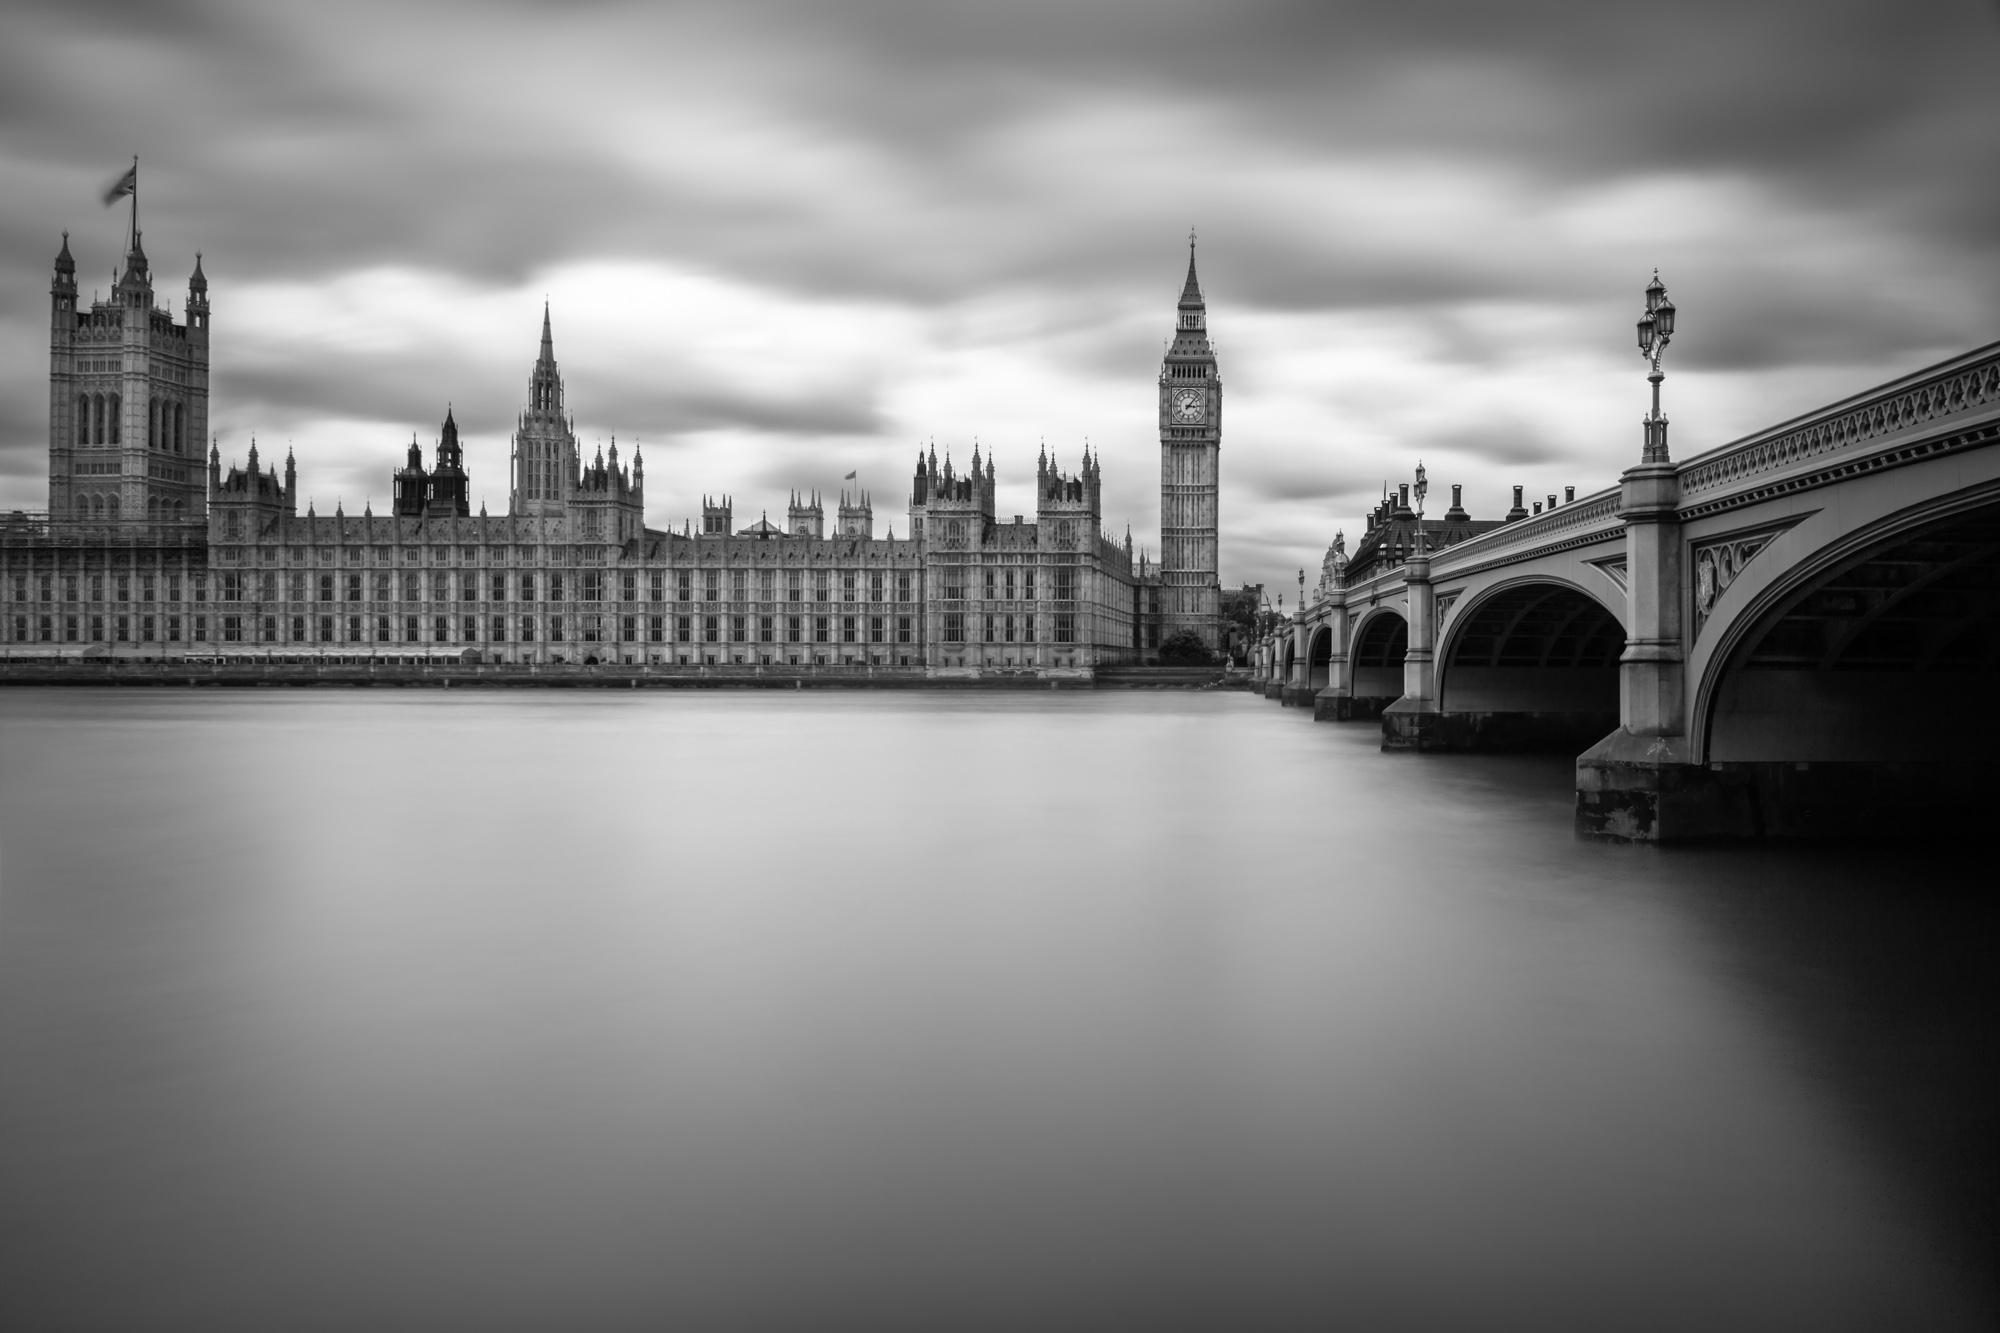 long exposure photograph River Thames view of London's Big Ben and Houses of Parliament